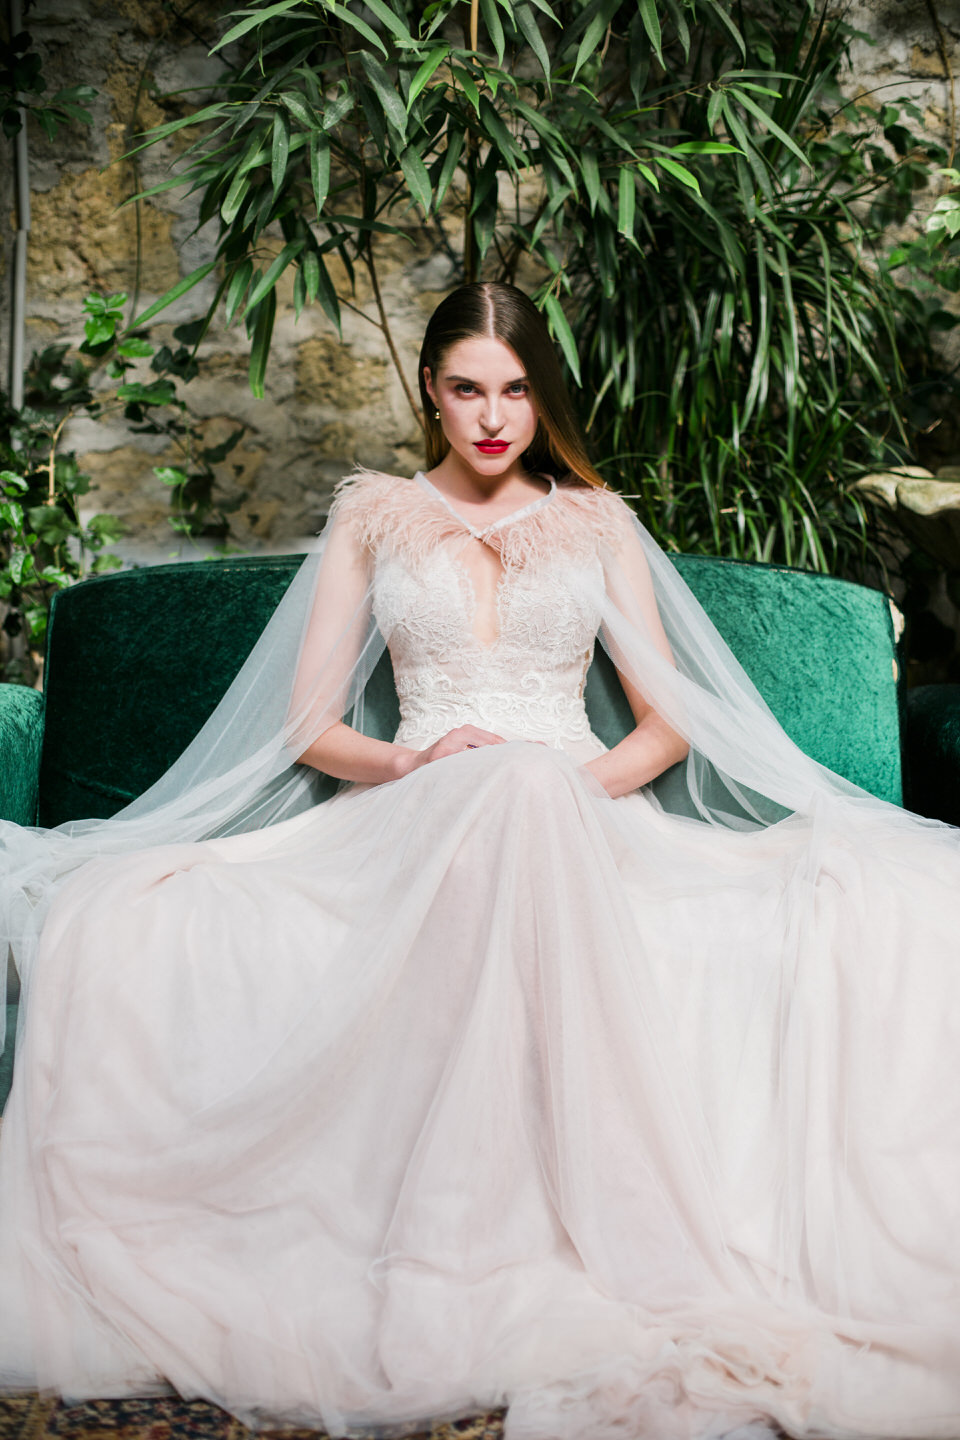 A Dreamy Wedding Editorial in Piree by Fiorello Photography